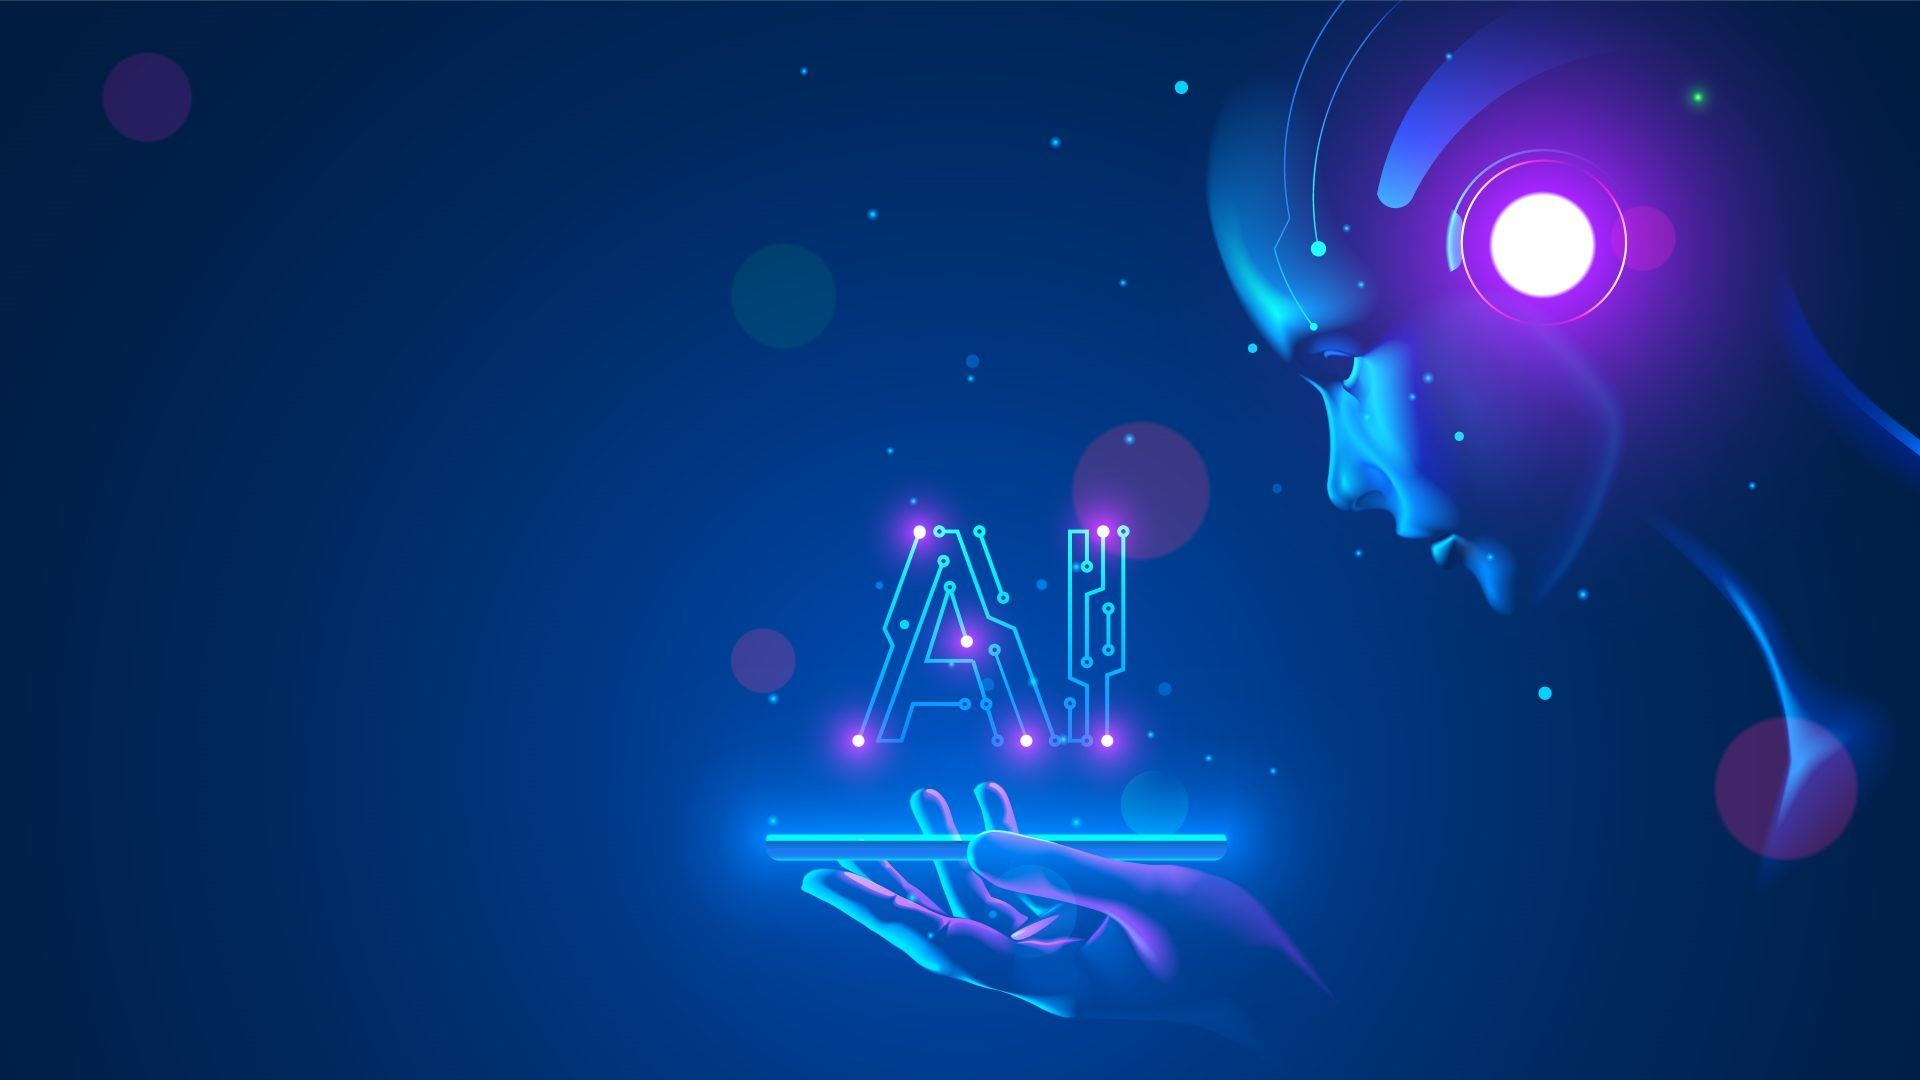 Concept image of a robot looking at a hologram of the letters AI